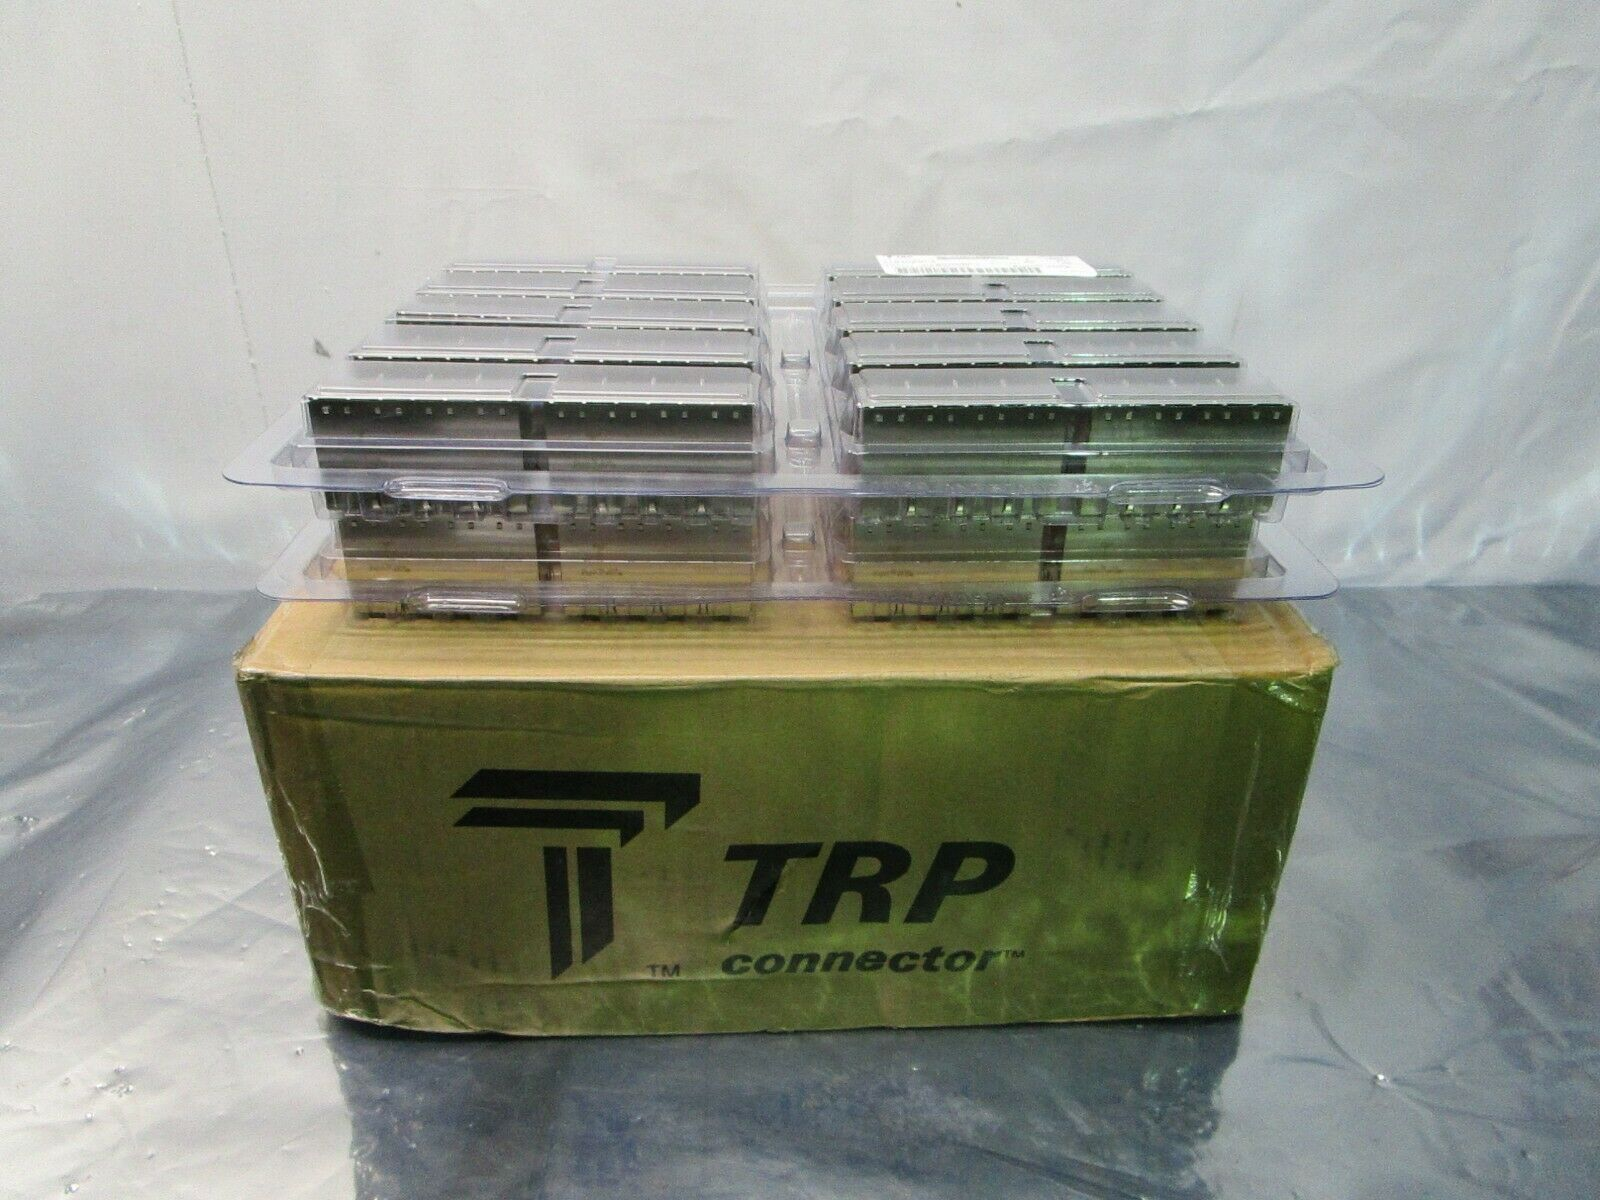 1 Lot of 40 TE Connectivity 1840230-4 TE Connectivity 2X4 MAG45 OFFSET, 102452